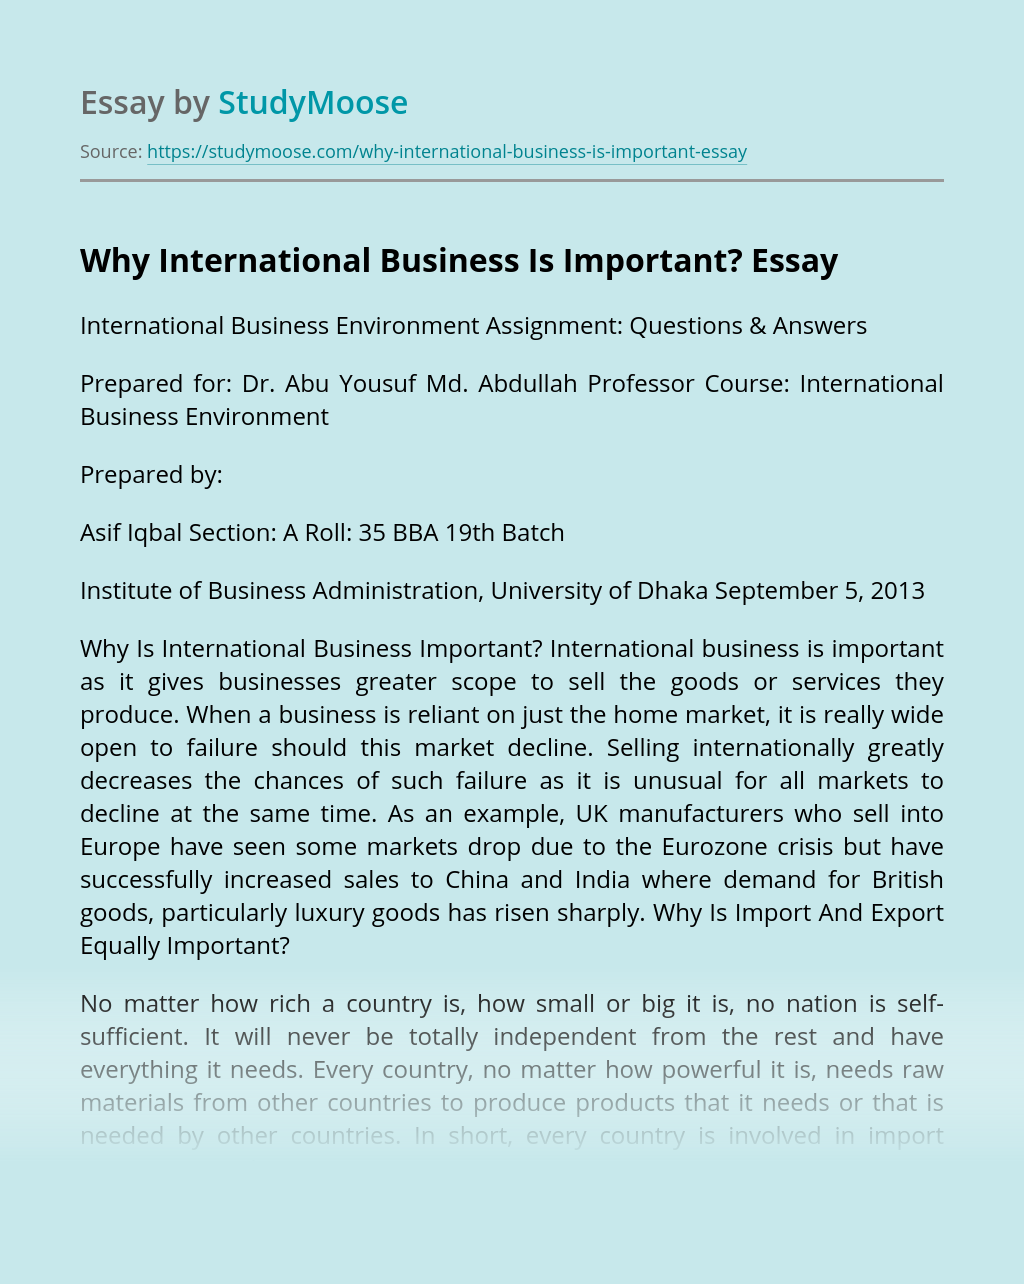 Why International Business Is Important?